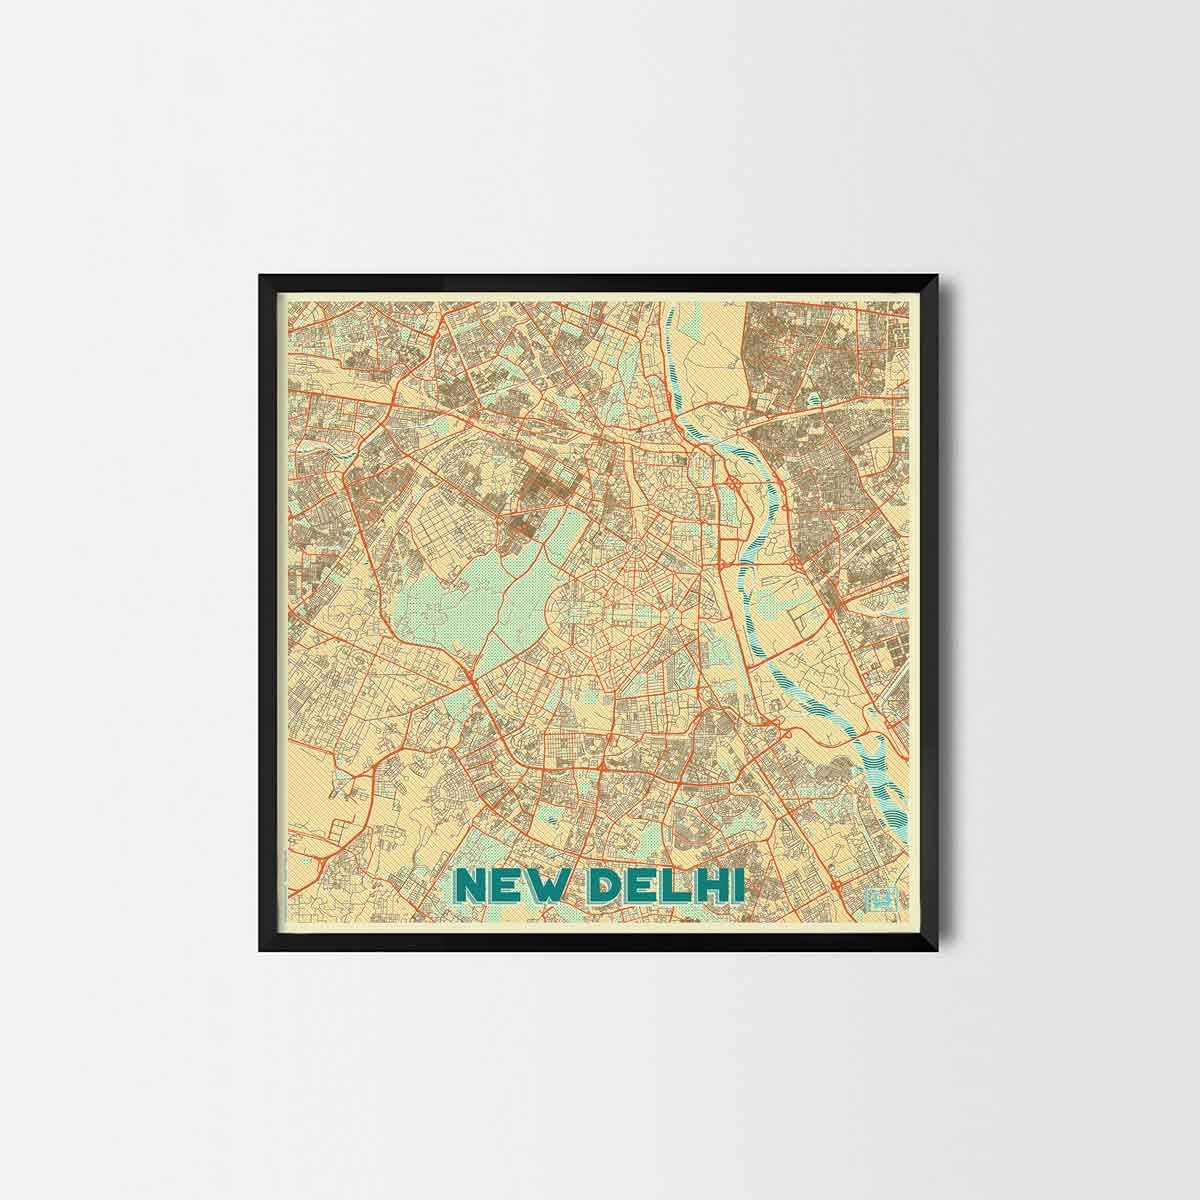 New delhi city prints city art posters and map prints art new delhi city prints city art posters and map prints gumiabroncs Images